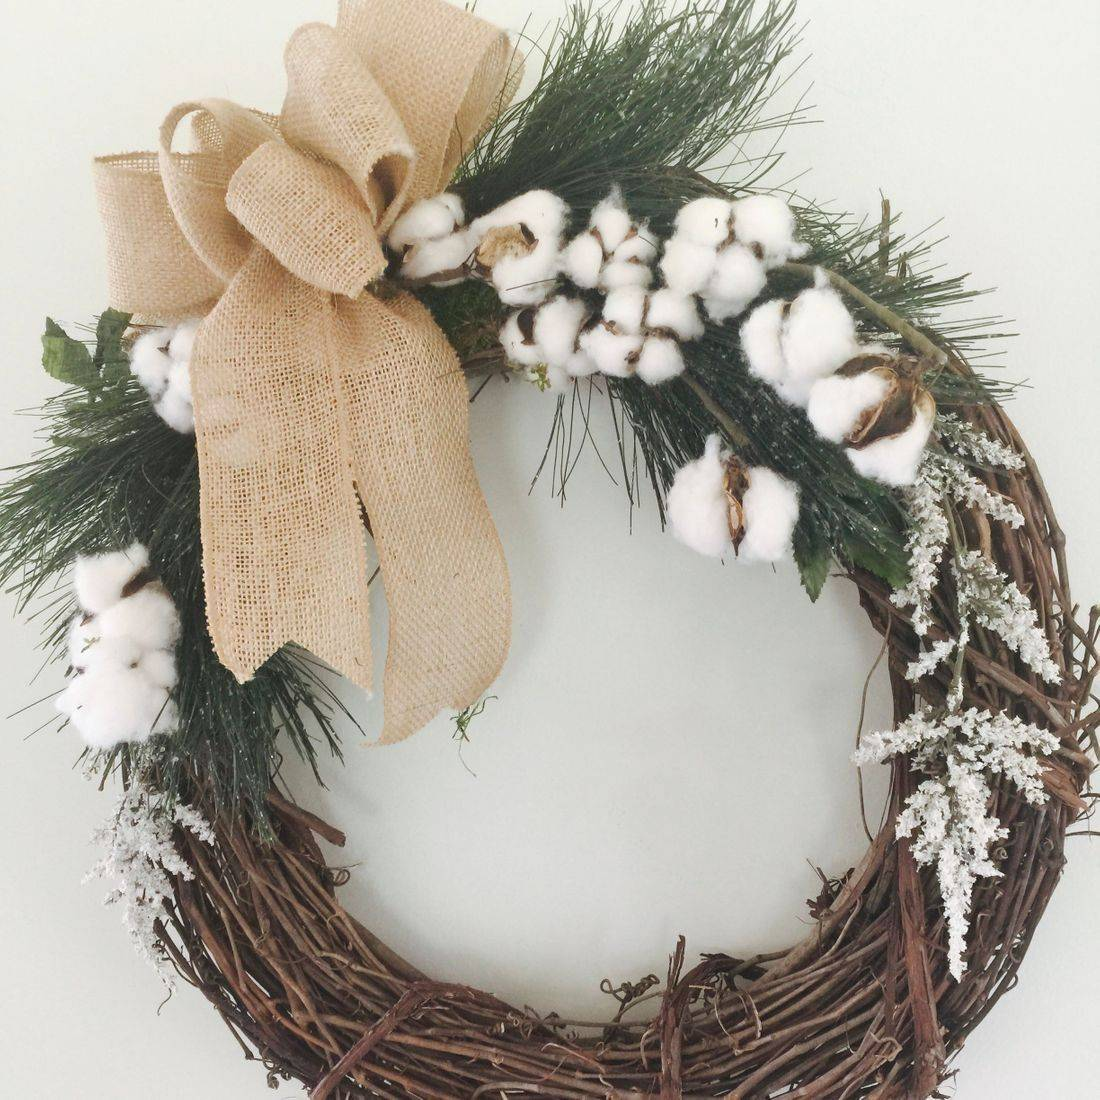 cotton boll Christmas wreath